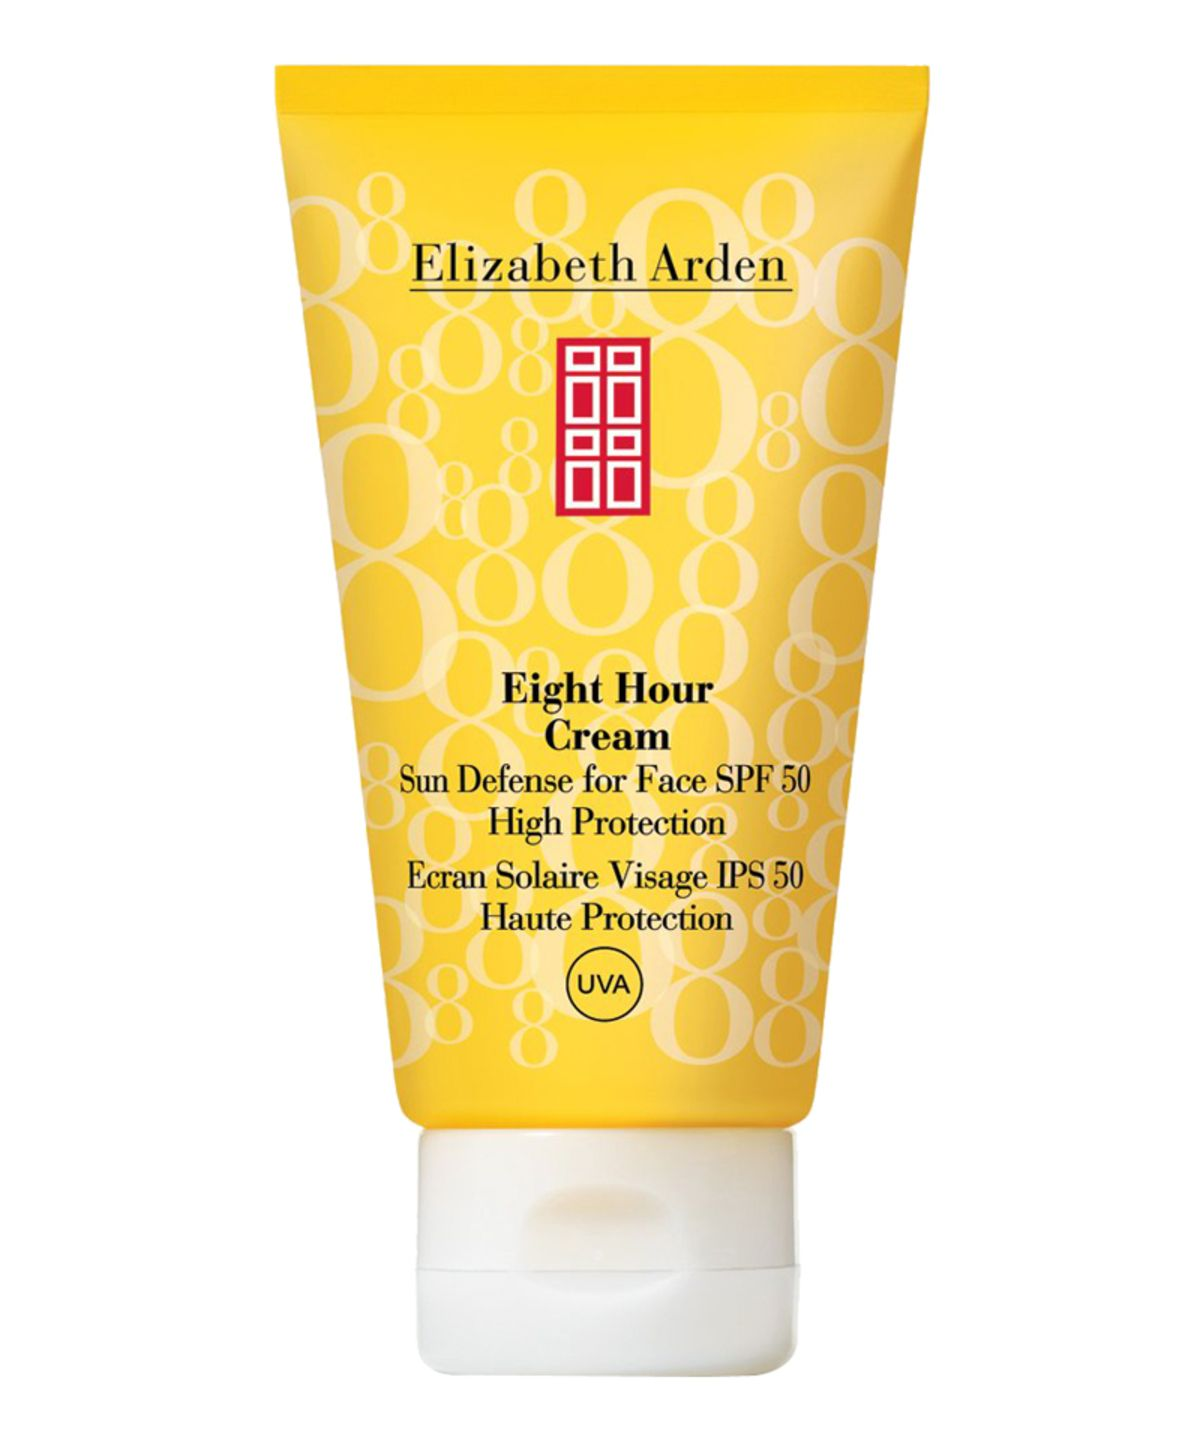 eighthourcreamsundefenseforfacespf50_50ml.jpg